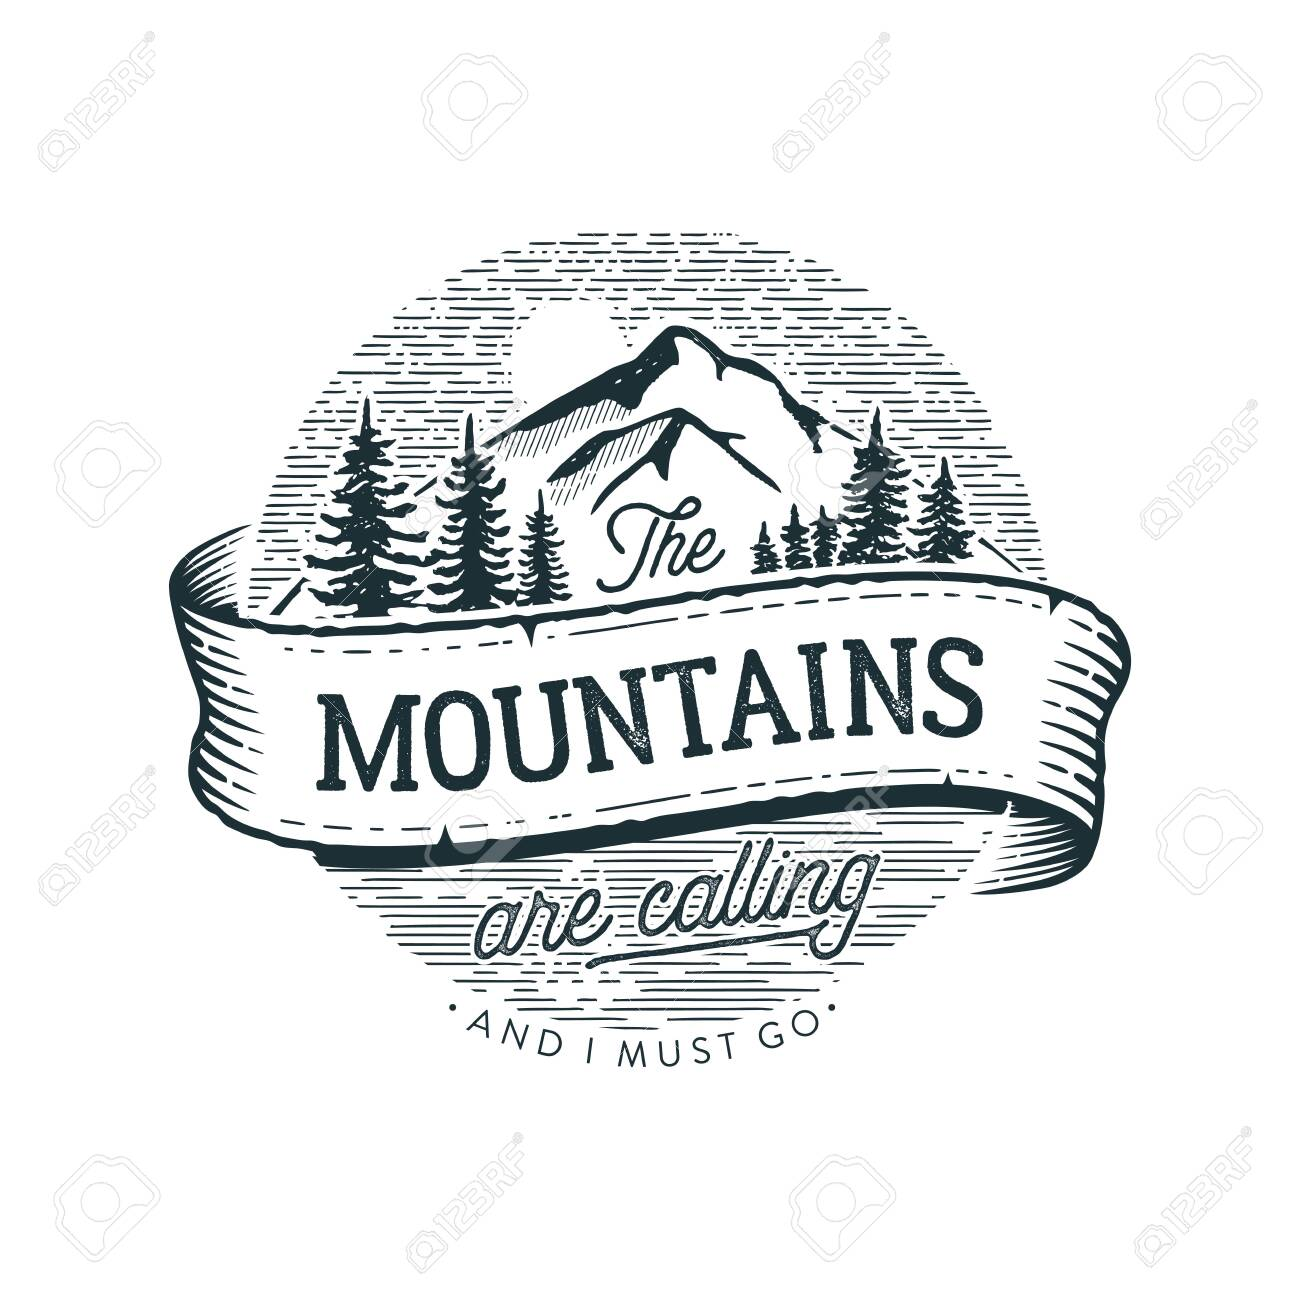 The Mountains are calling circle Vector illustration. - 119808916